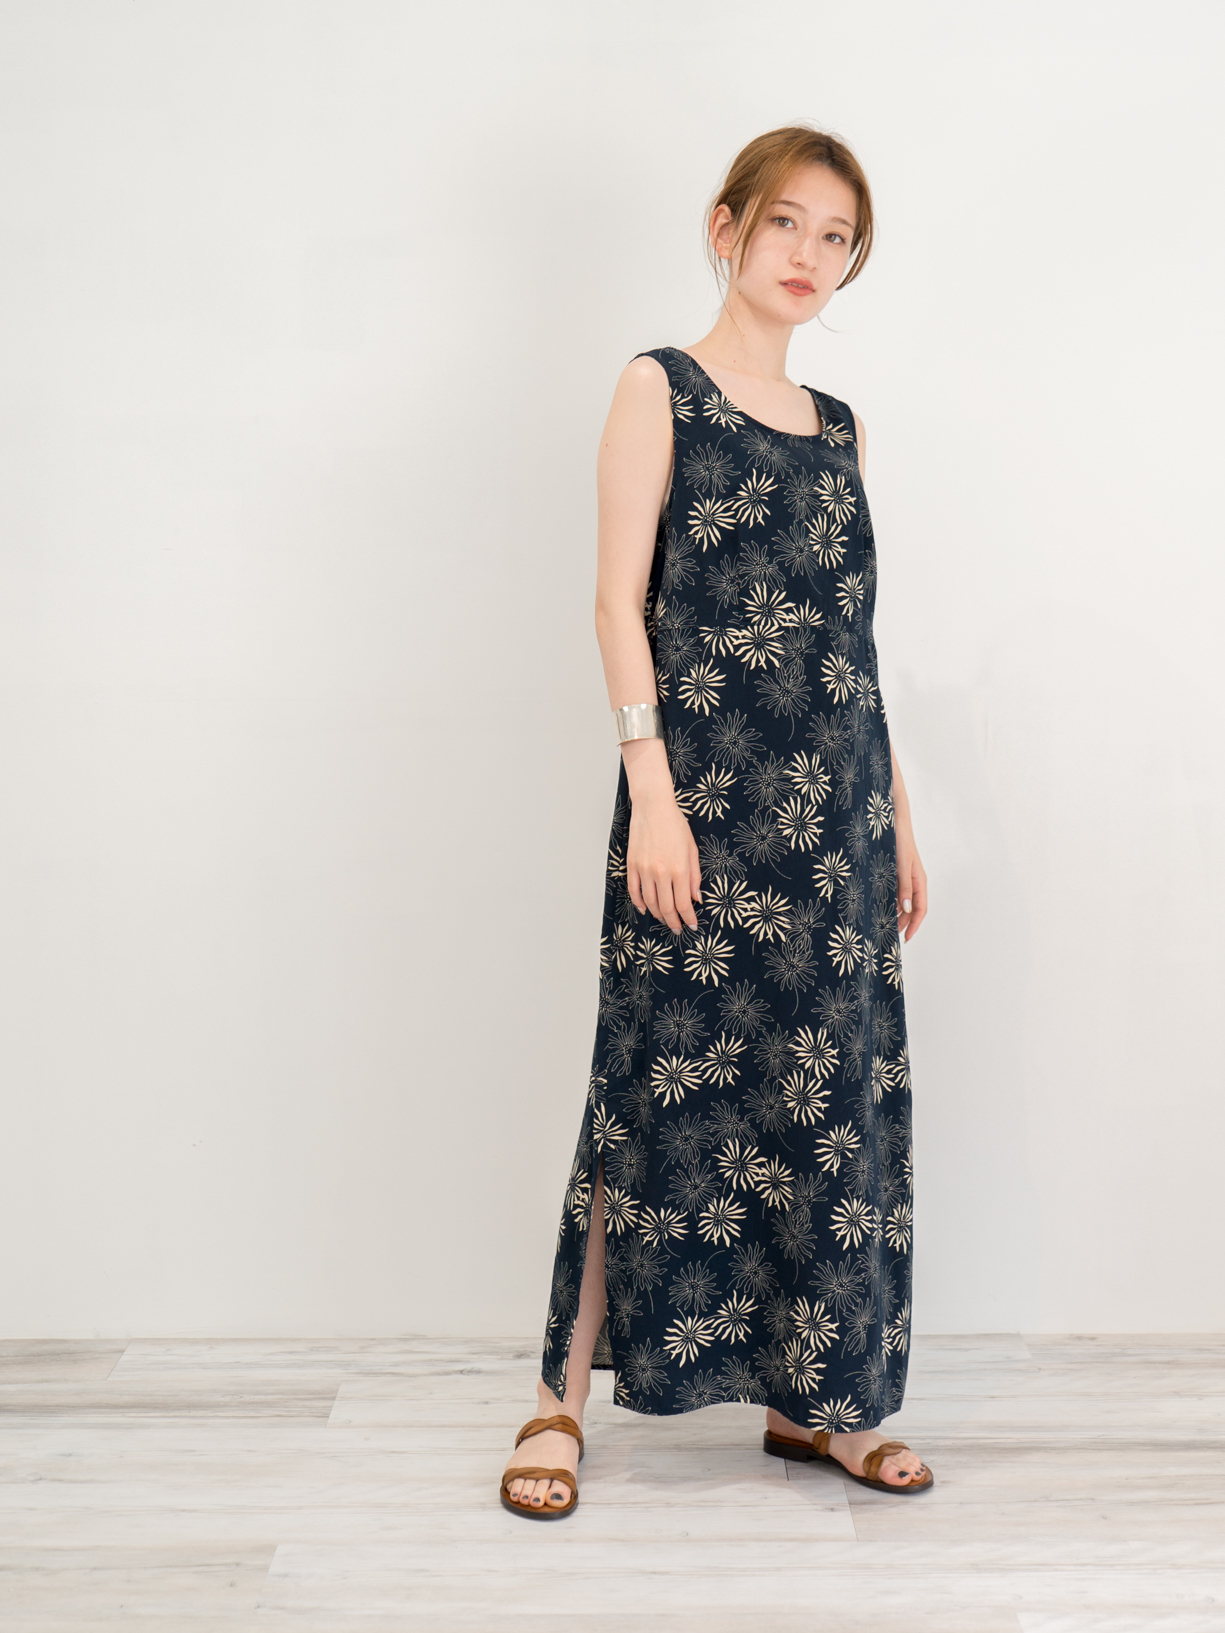 ◼︎90s monotone floral pattern polyester maxi dress from U.S.A◼︎